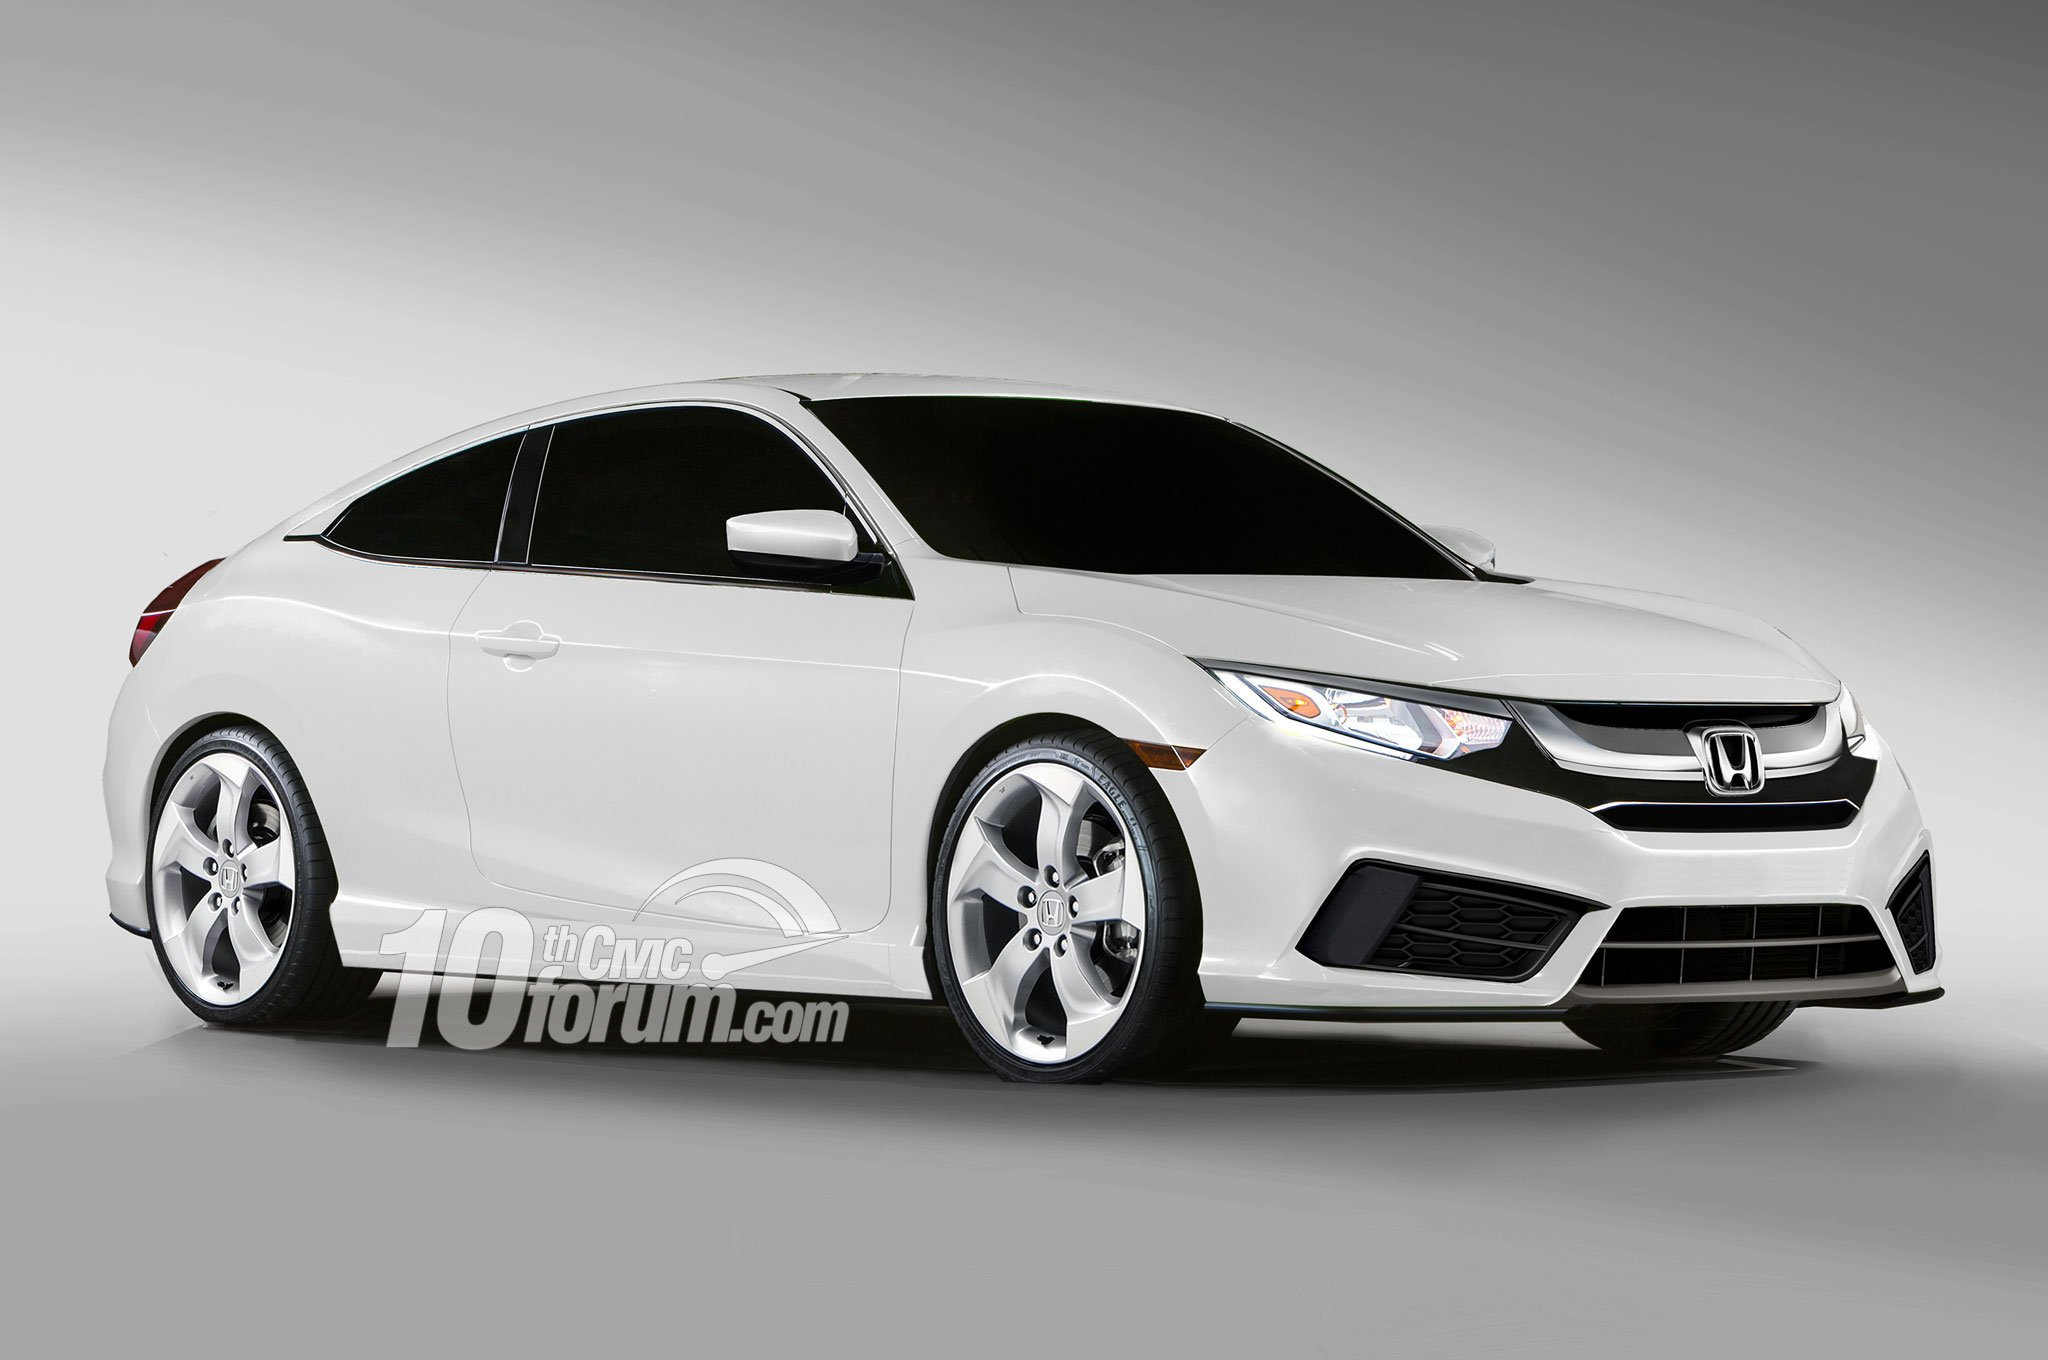 2016 honda civic coupe hatchback and sedan rendered for 2016 honda civic ex t review